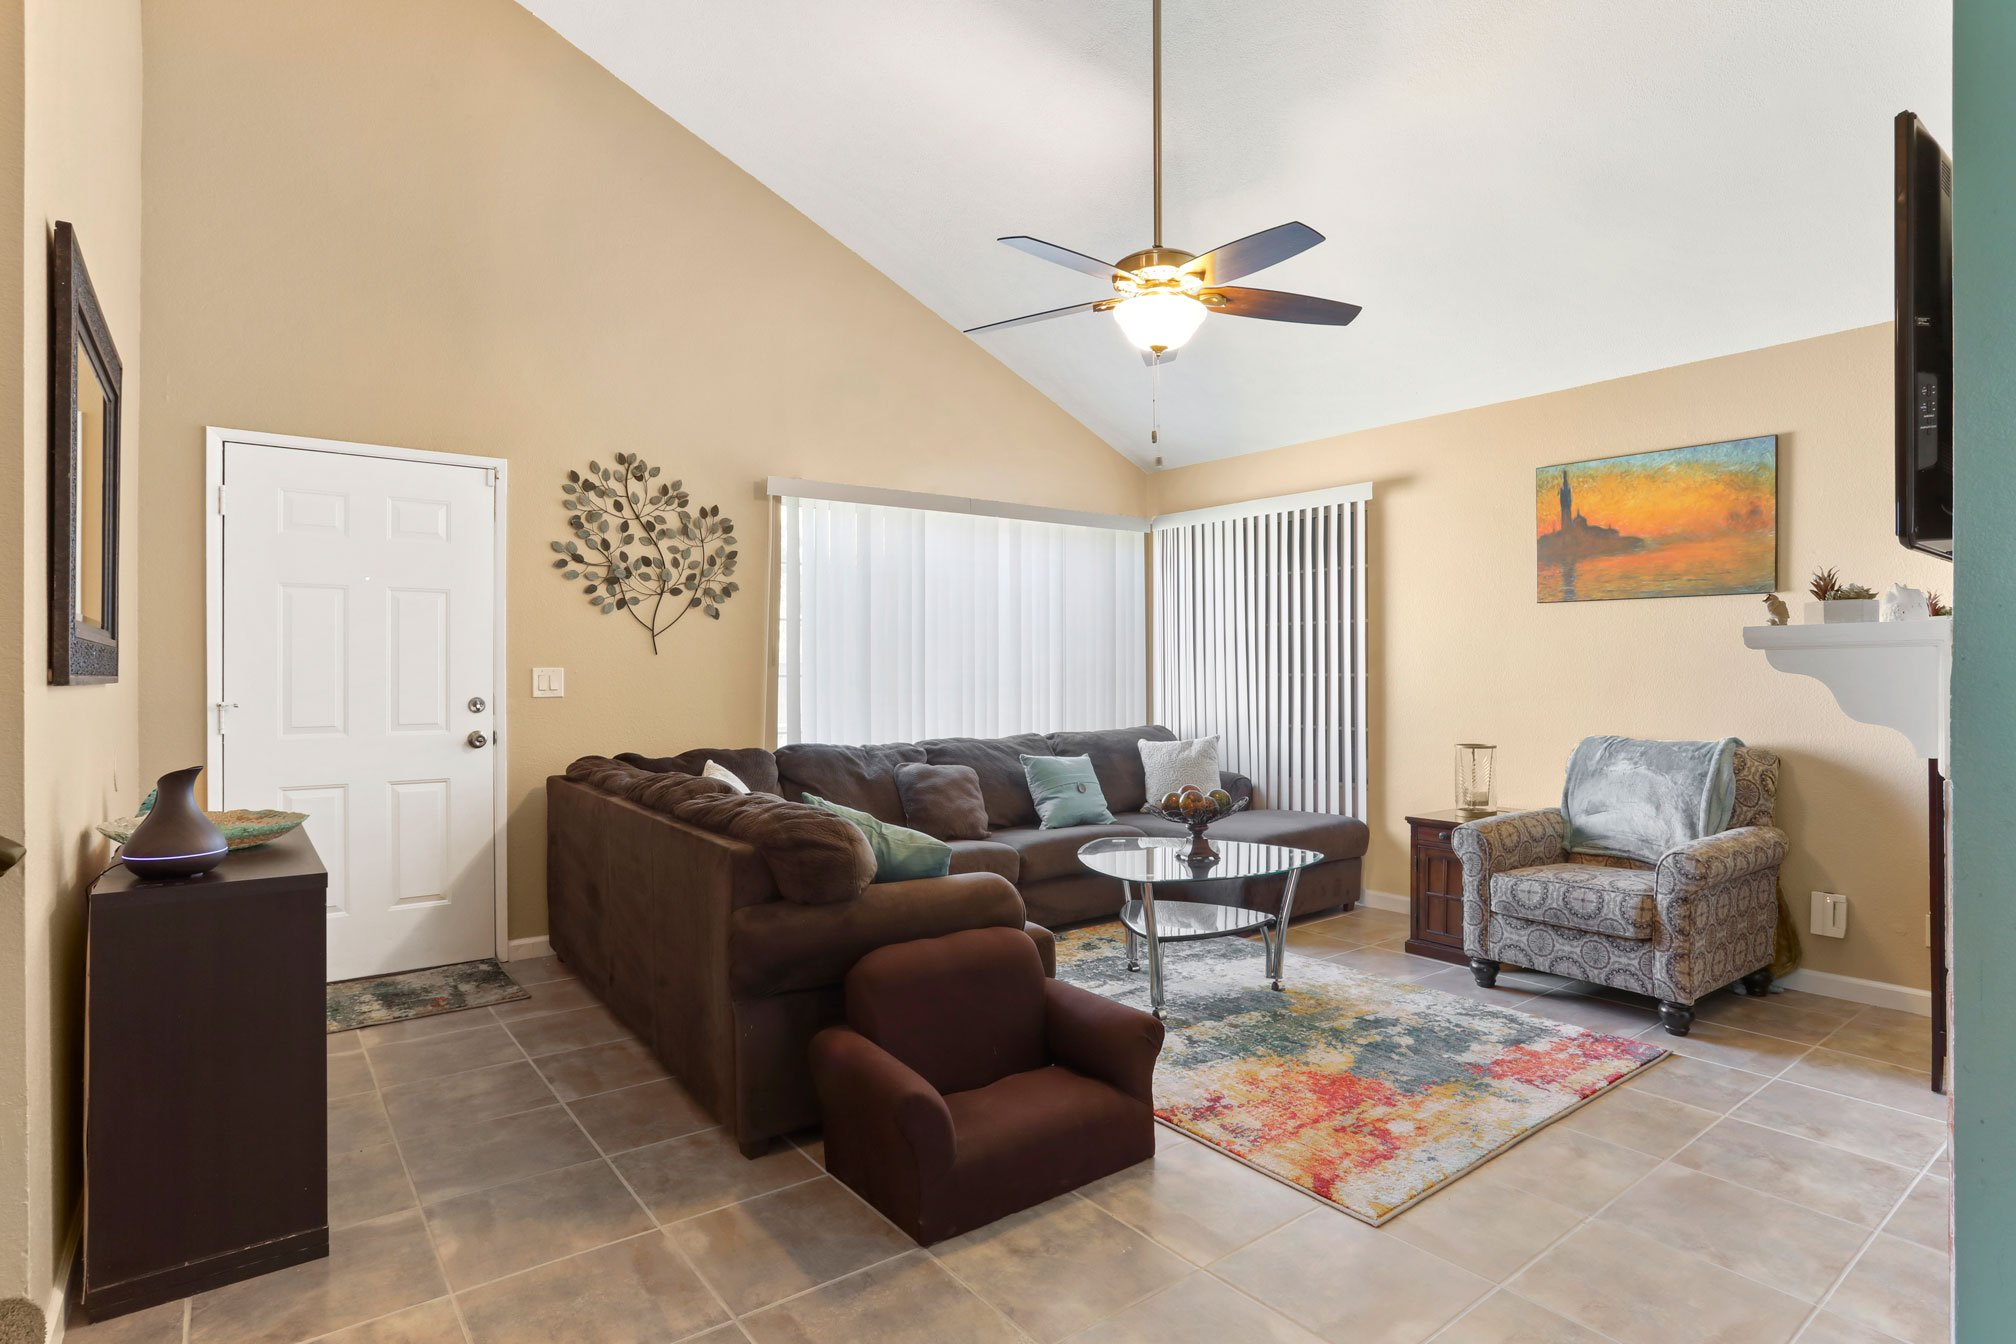 4 Palmdale Real Estate Agent Photo Living Room